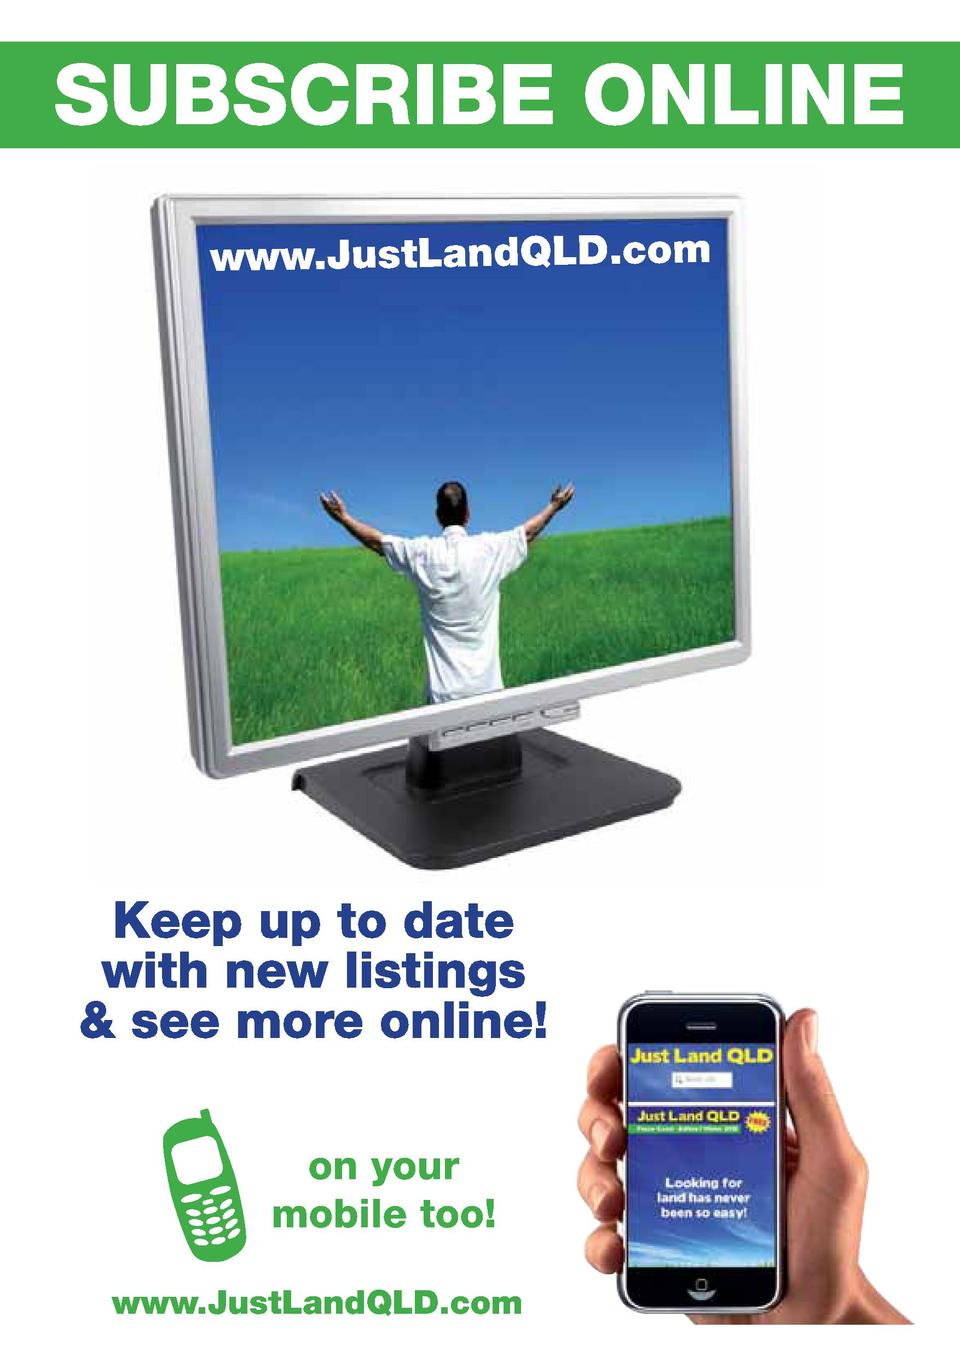 www.JustLandQLD.com  5  on your mobile too   www.JustLandQLD.com